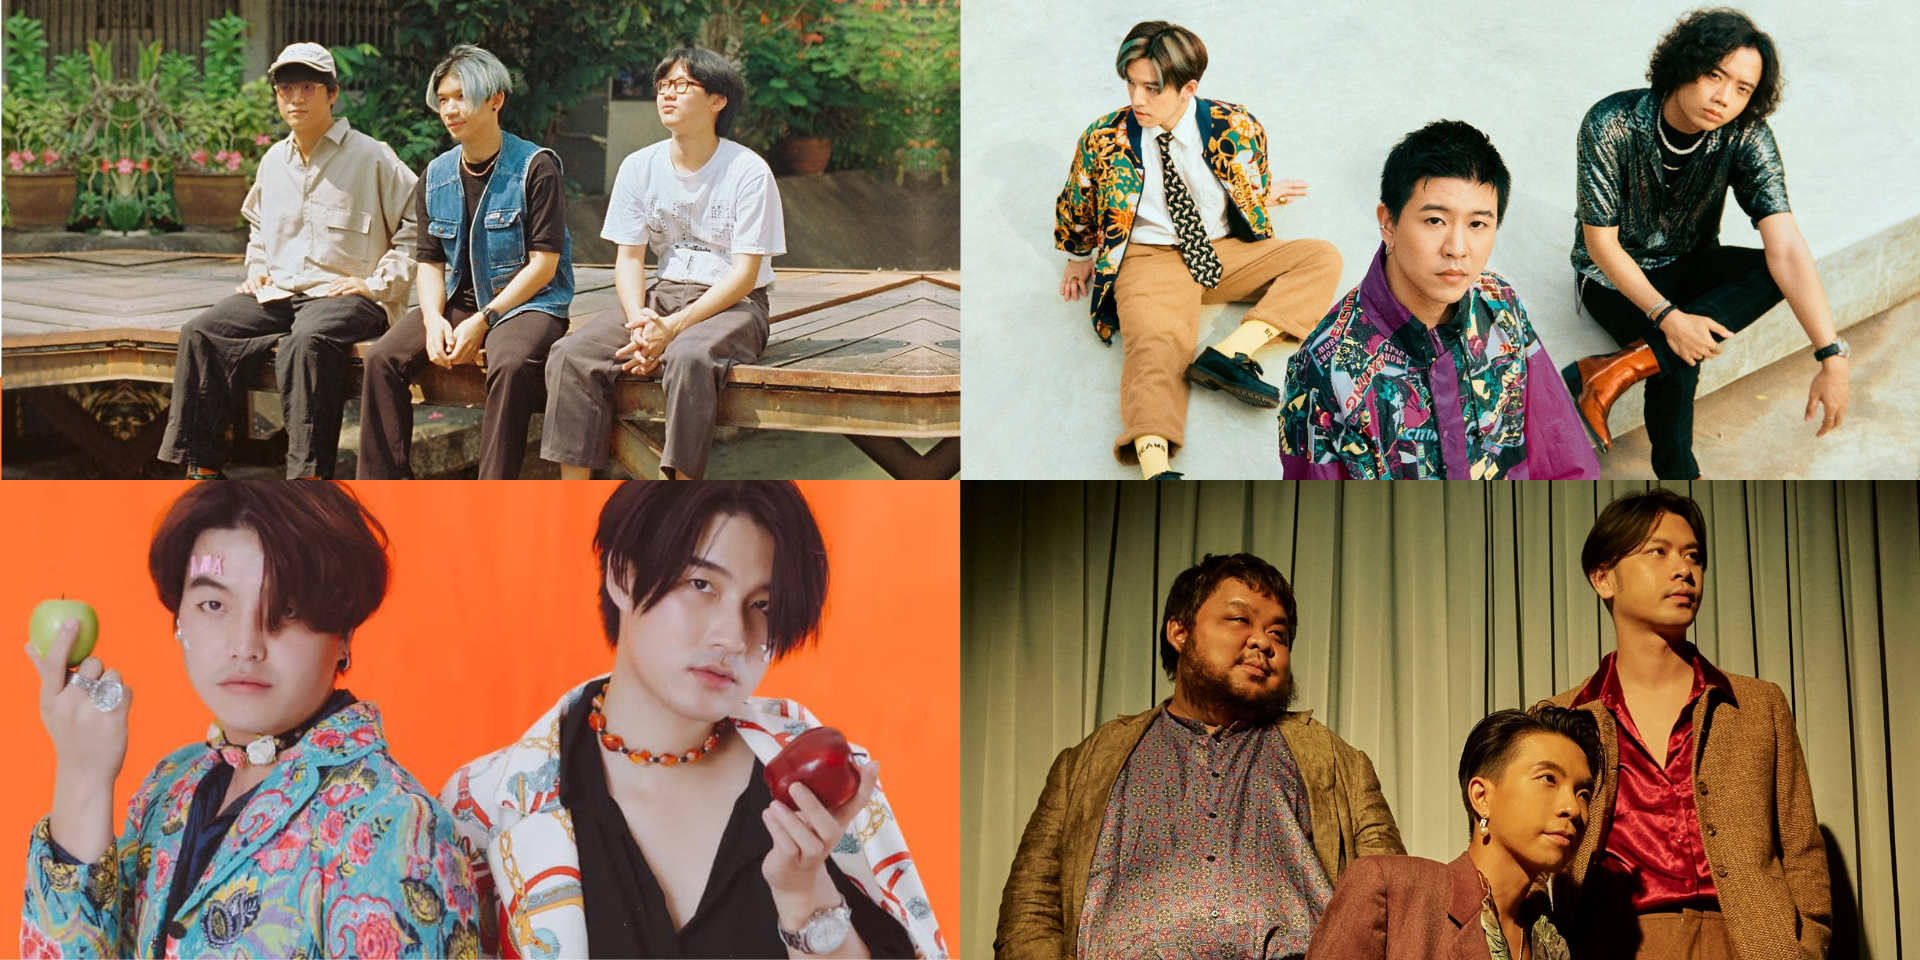 11 Thai indie acts to check out featuring Safeplanet, Tilly Birds, Polycat, Anatomy Rabbit, and more